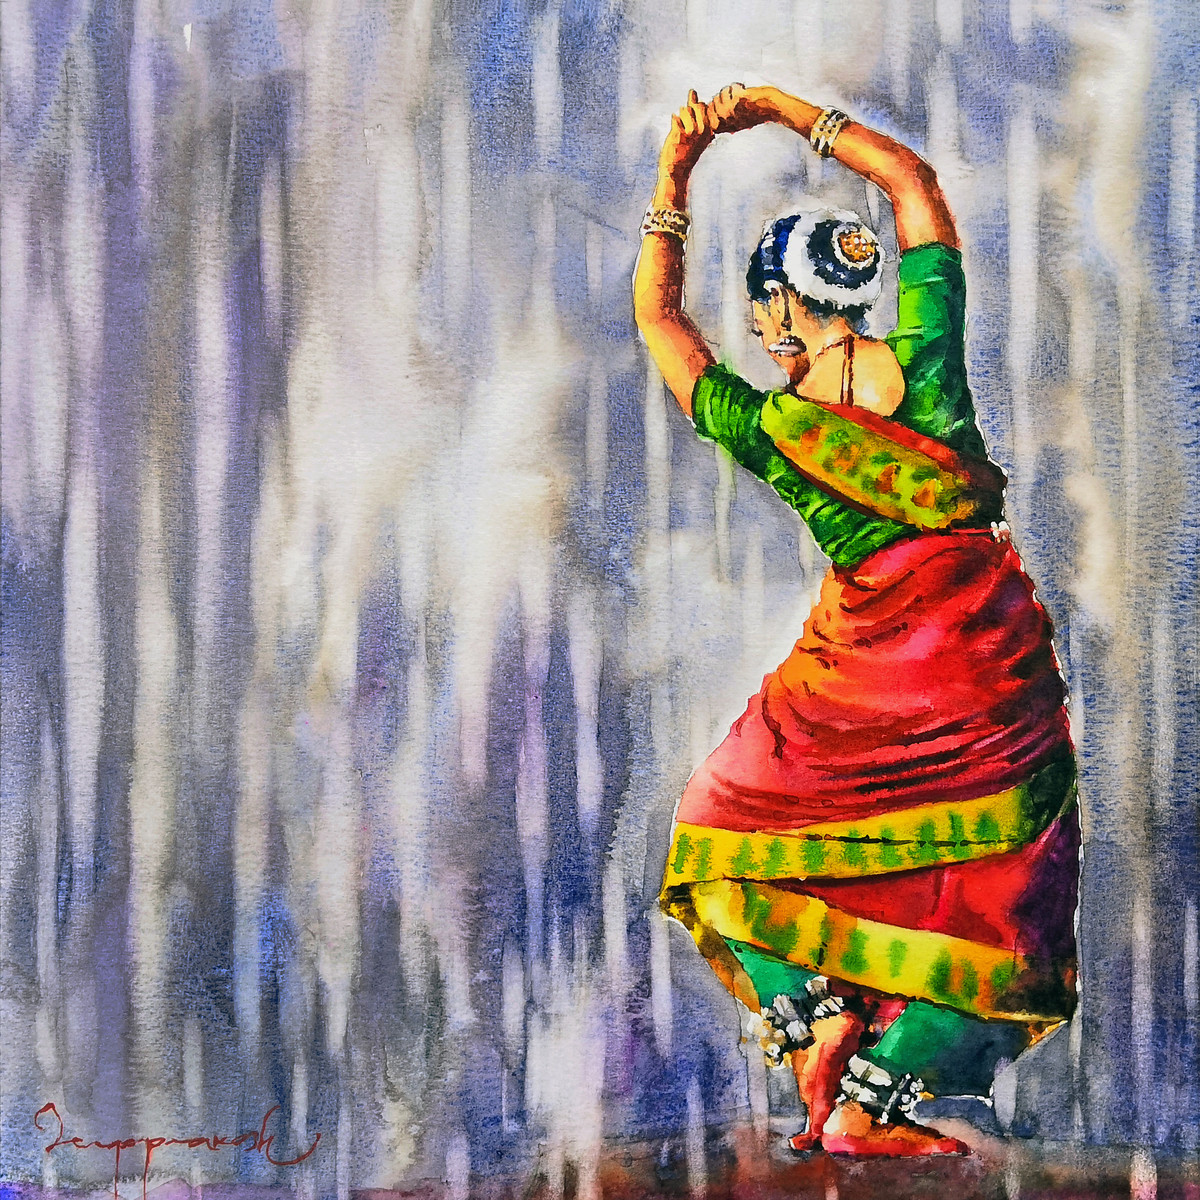 Classical Dancer by Jeyaprakash M, Expressionism Painting, Watercolor on Paper, Manatee color